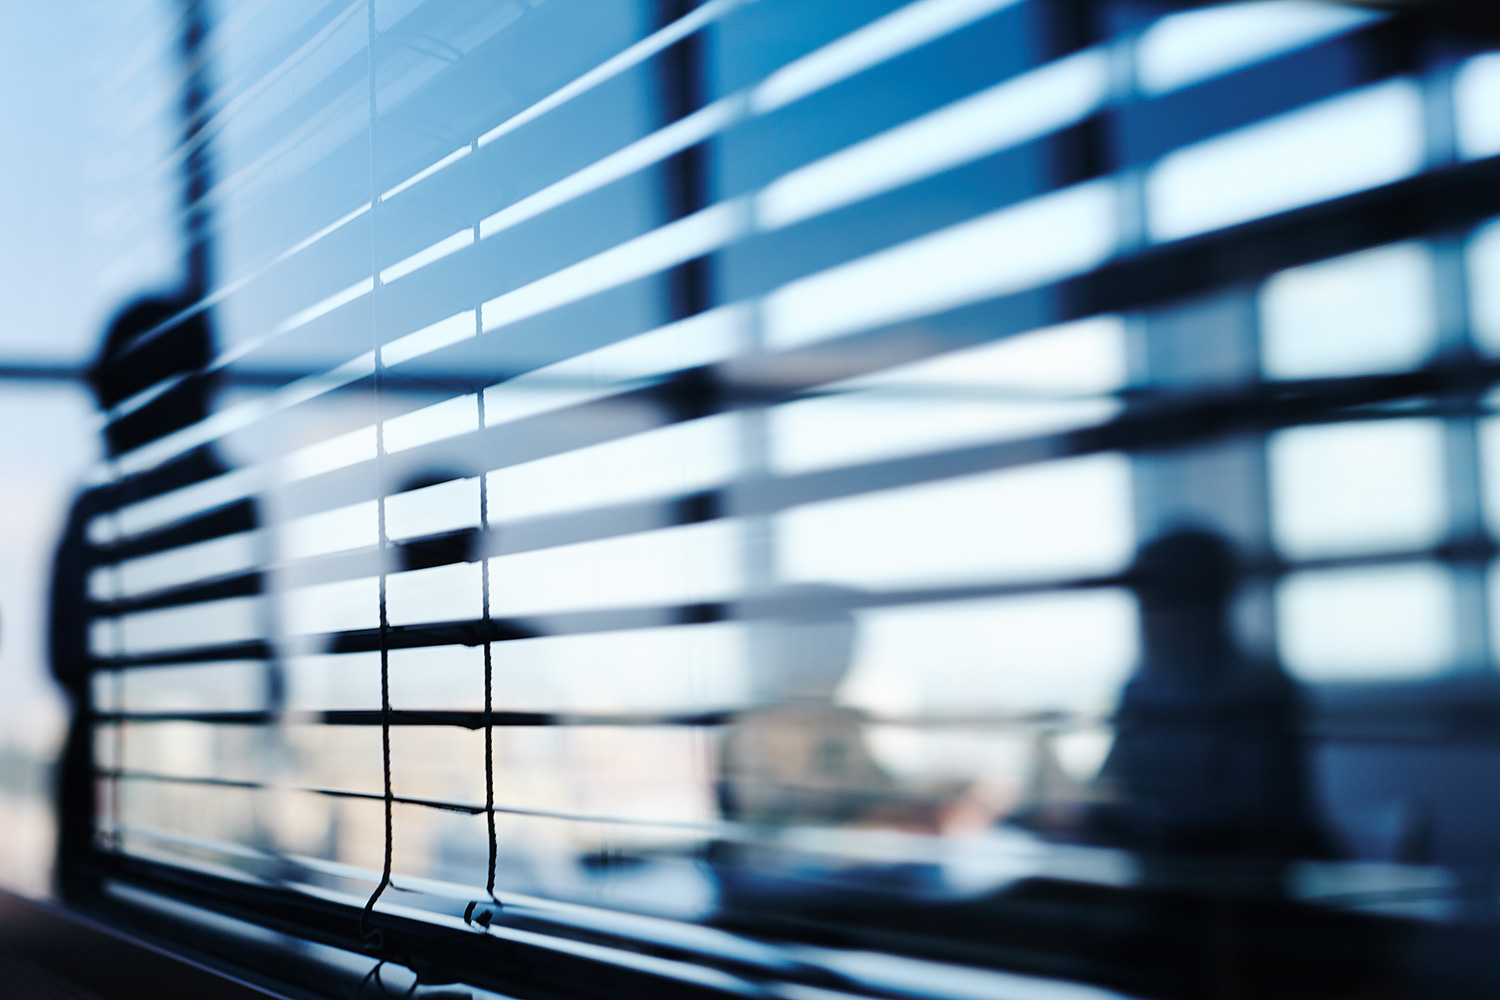 privacy blinds over window during meeting